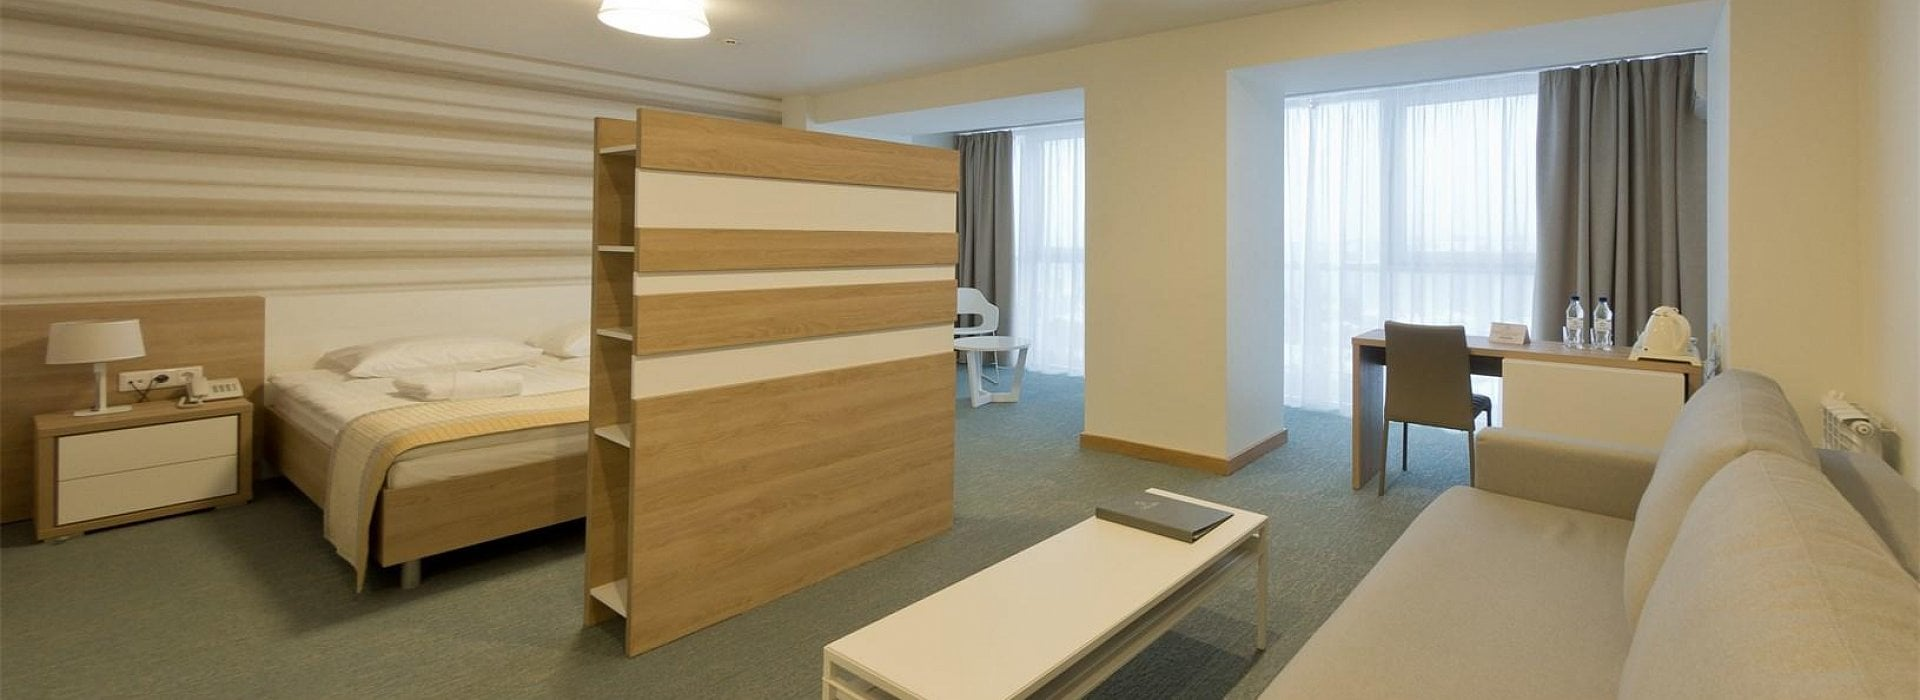 Junior Suite with views of the Volga river (RV)